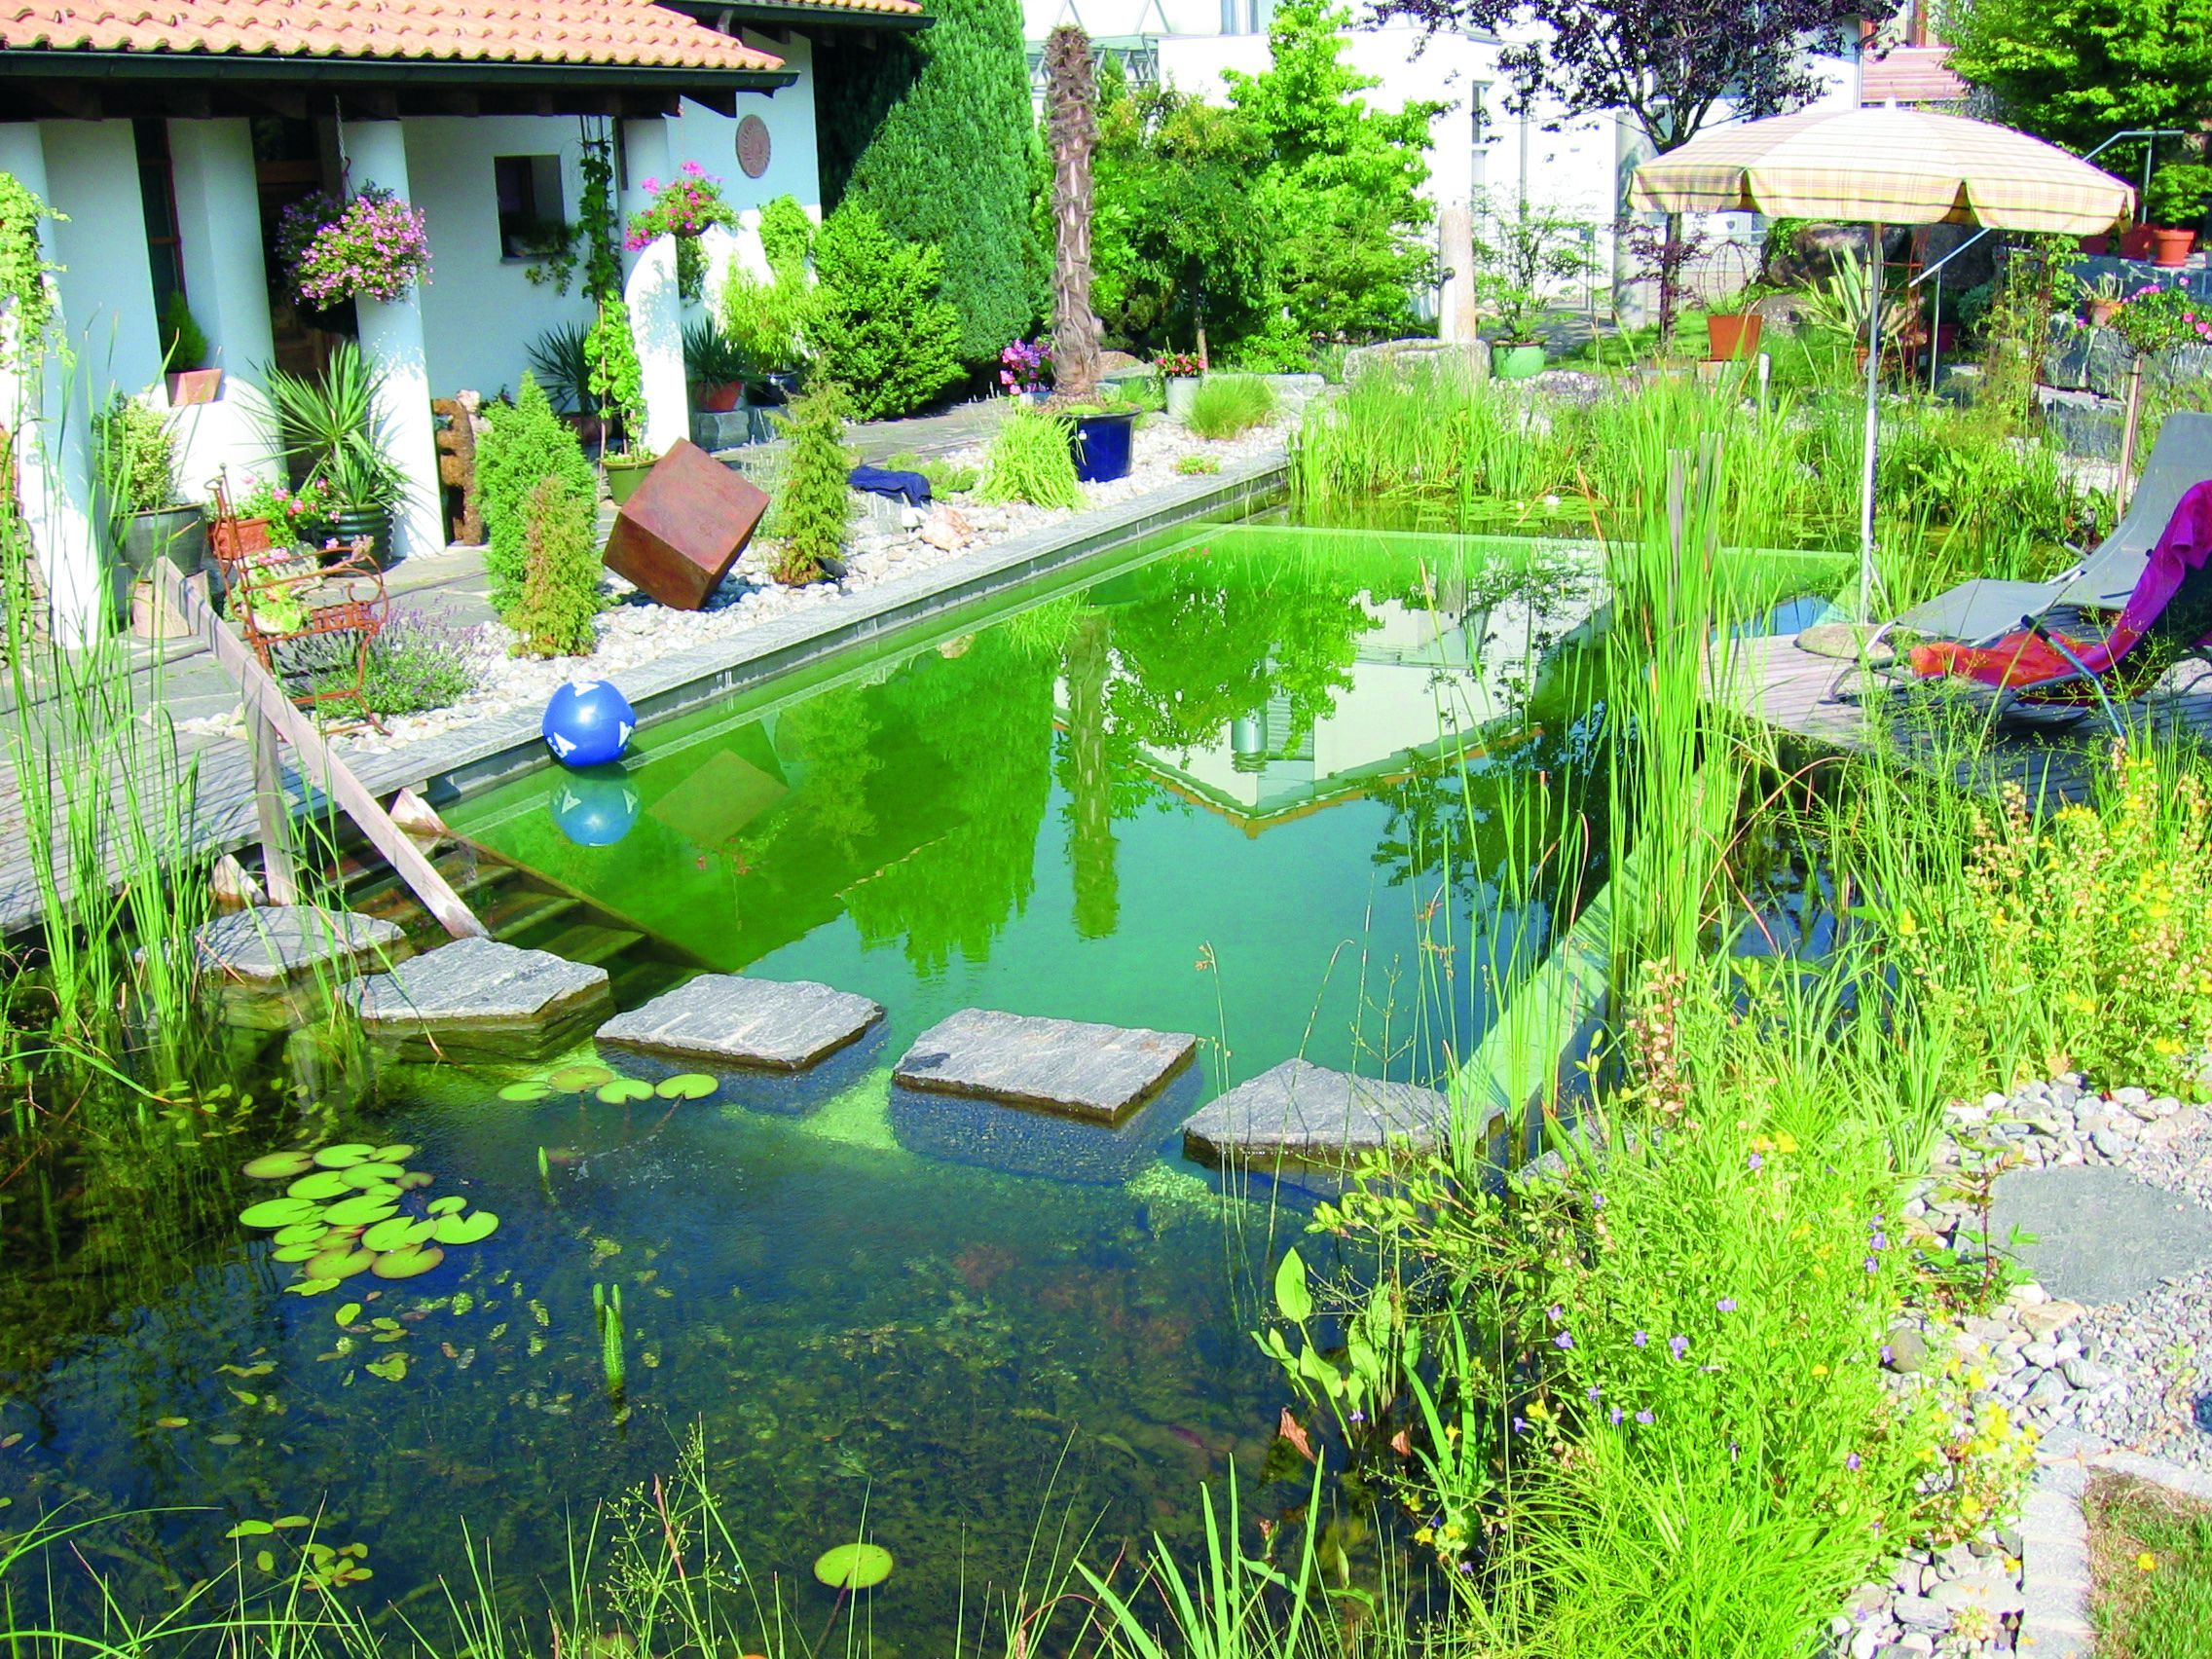 Eco friendly pool designs solar heating and bio filter interior - Natural Pool Stepping Stones Divide Bio Zone From Swimming Pool